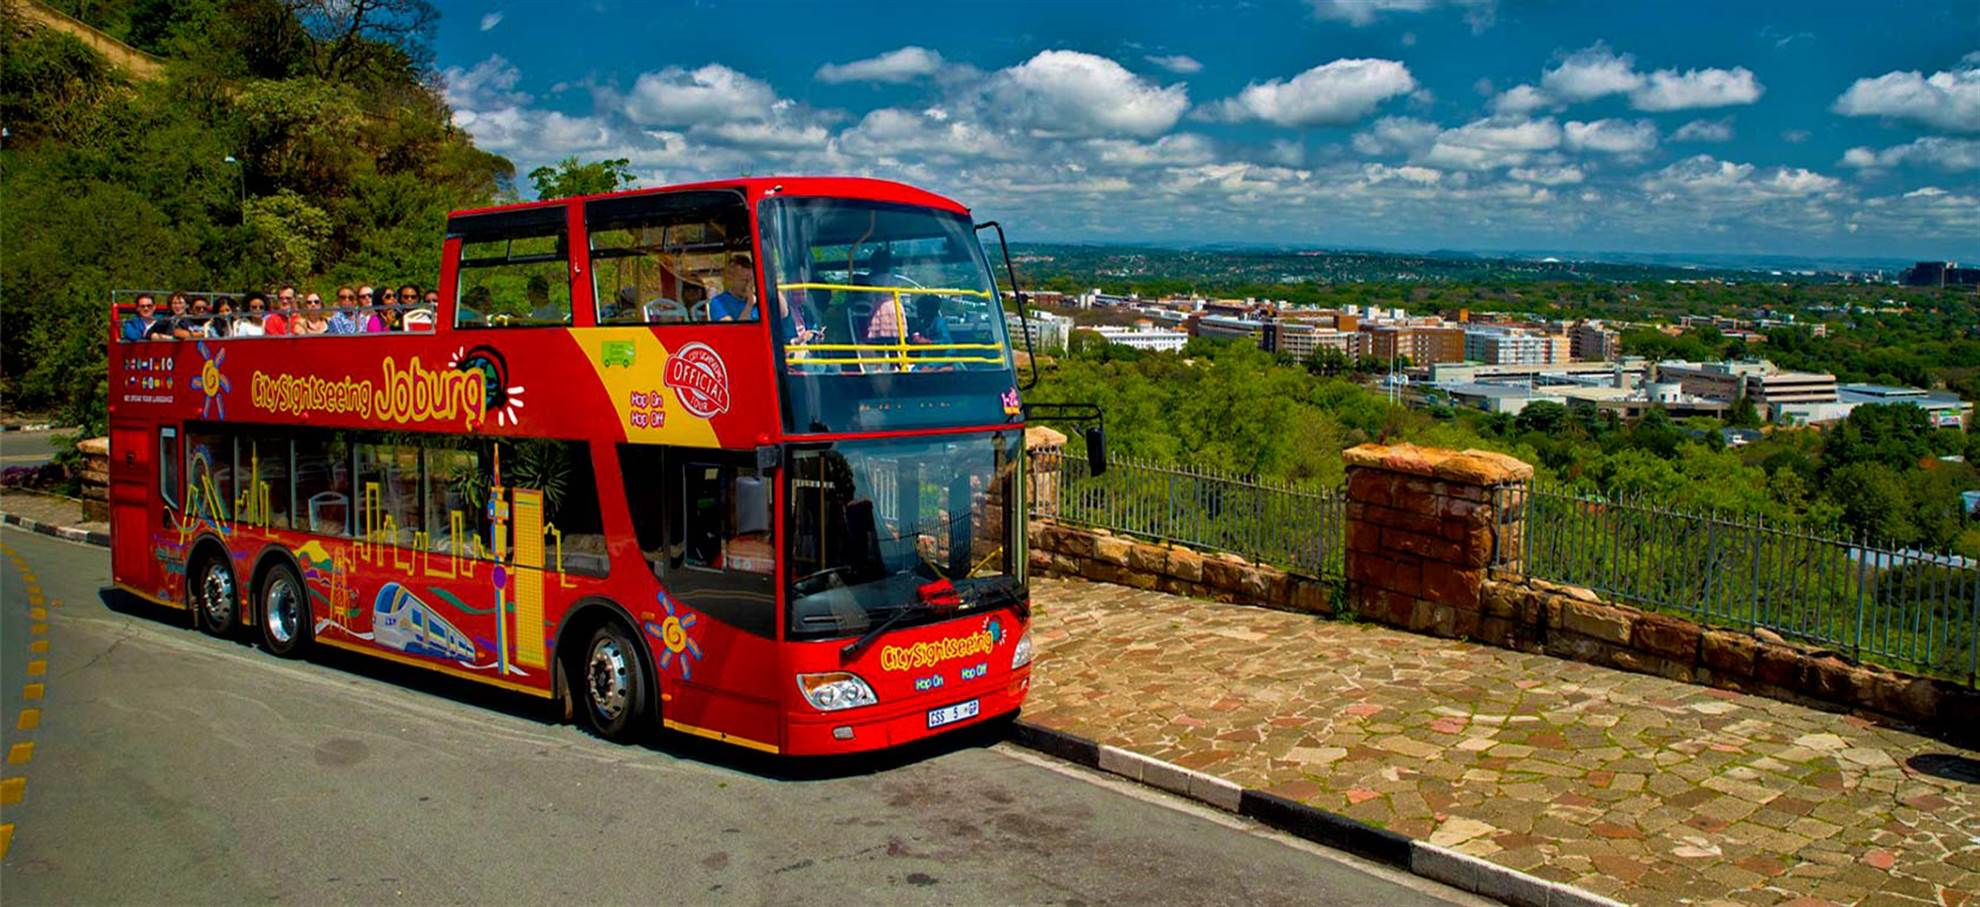 Johannesburg Hop-on Hop-off Bus